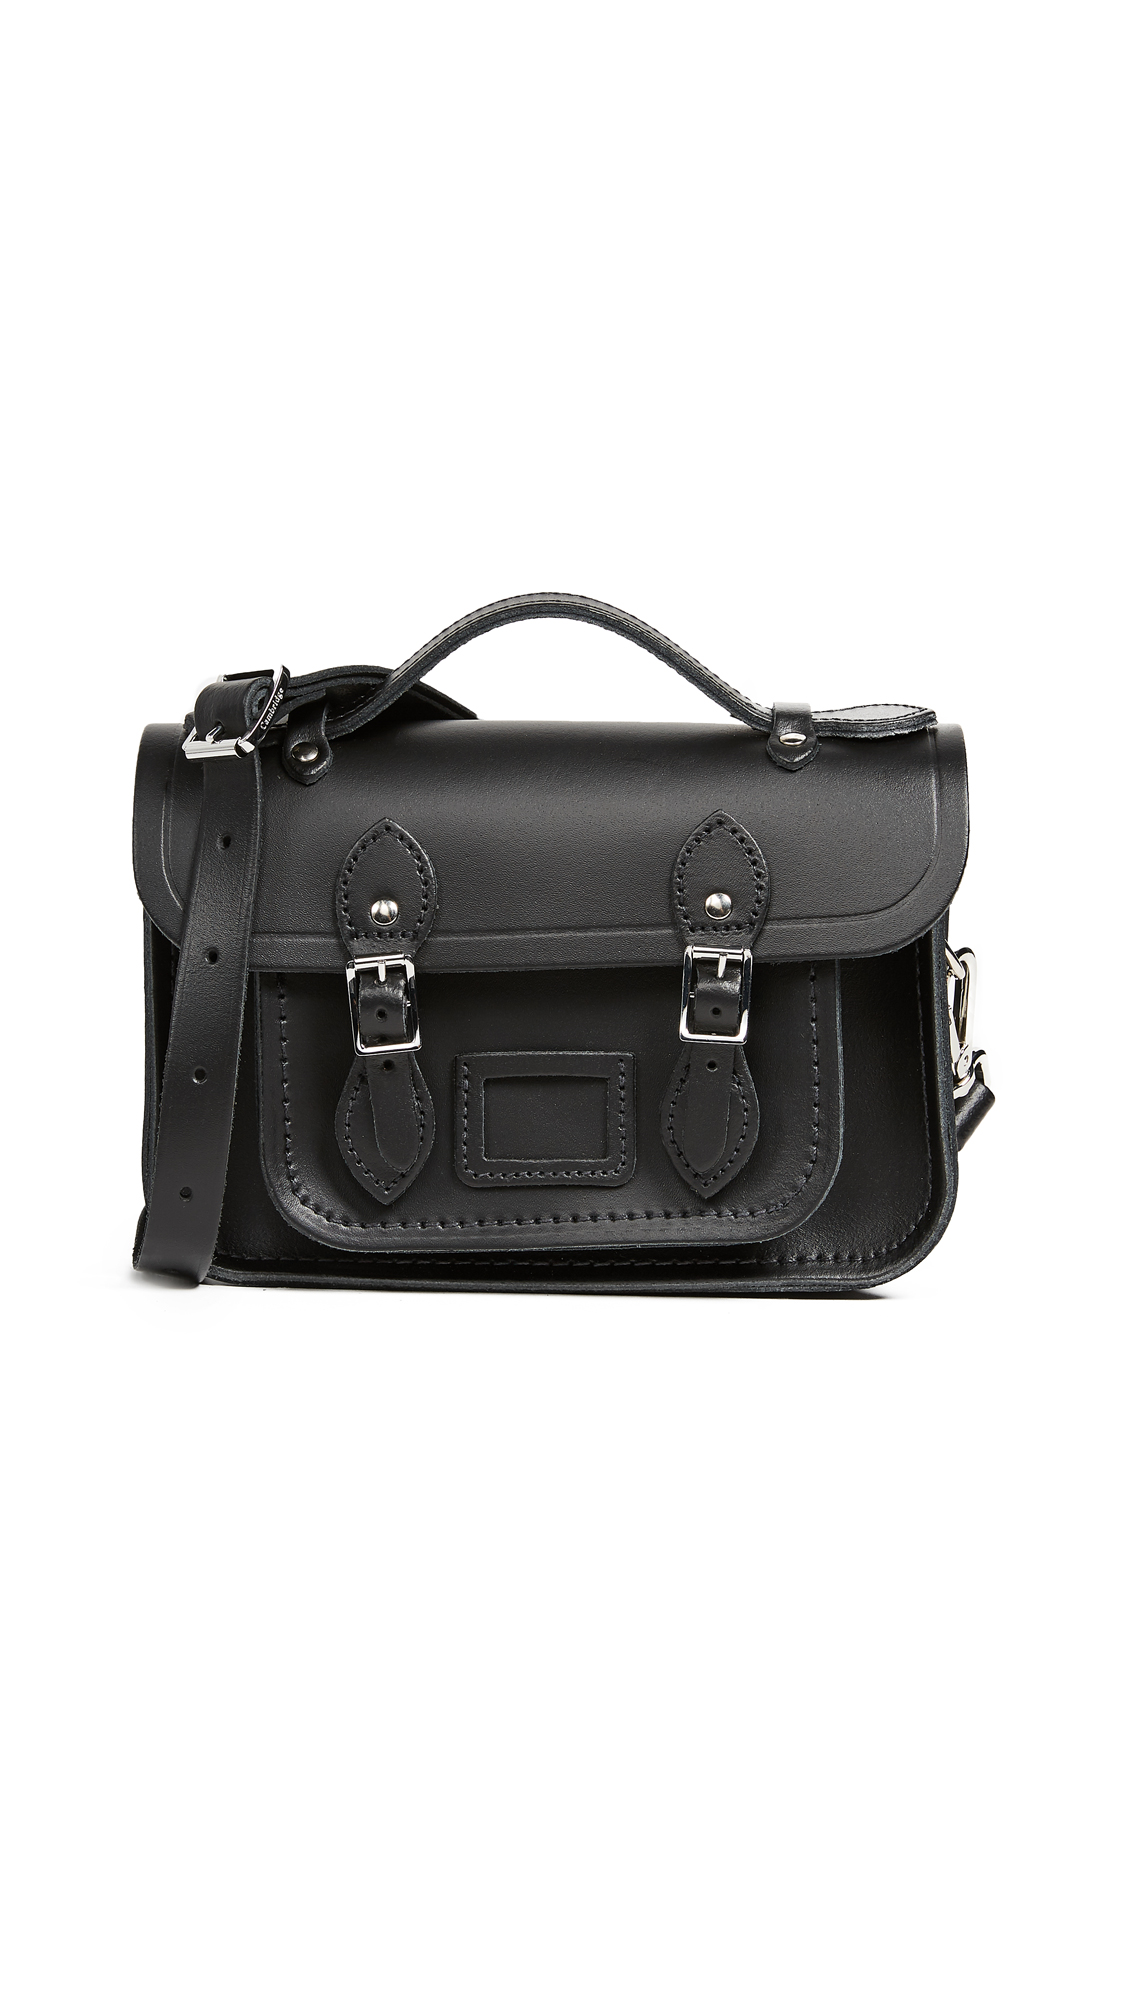 Cambridge Satchel Mini Satchel - Black